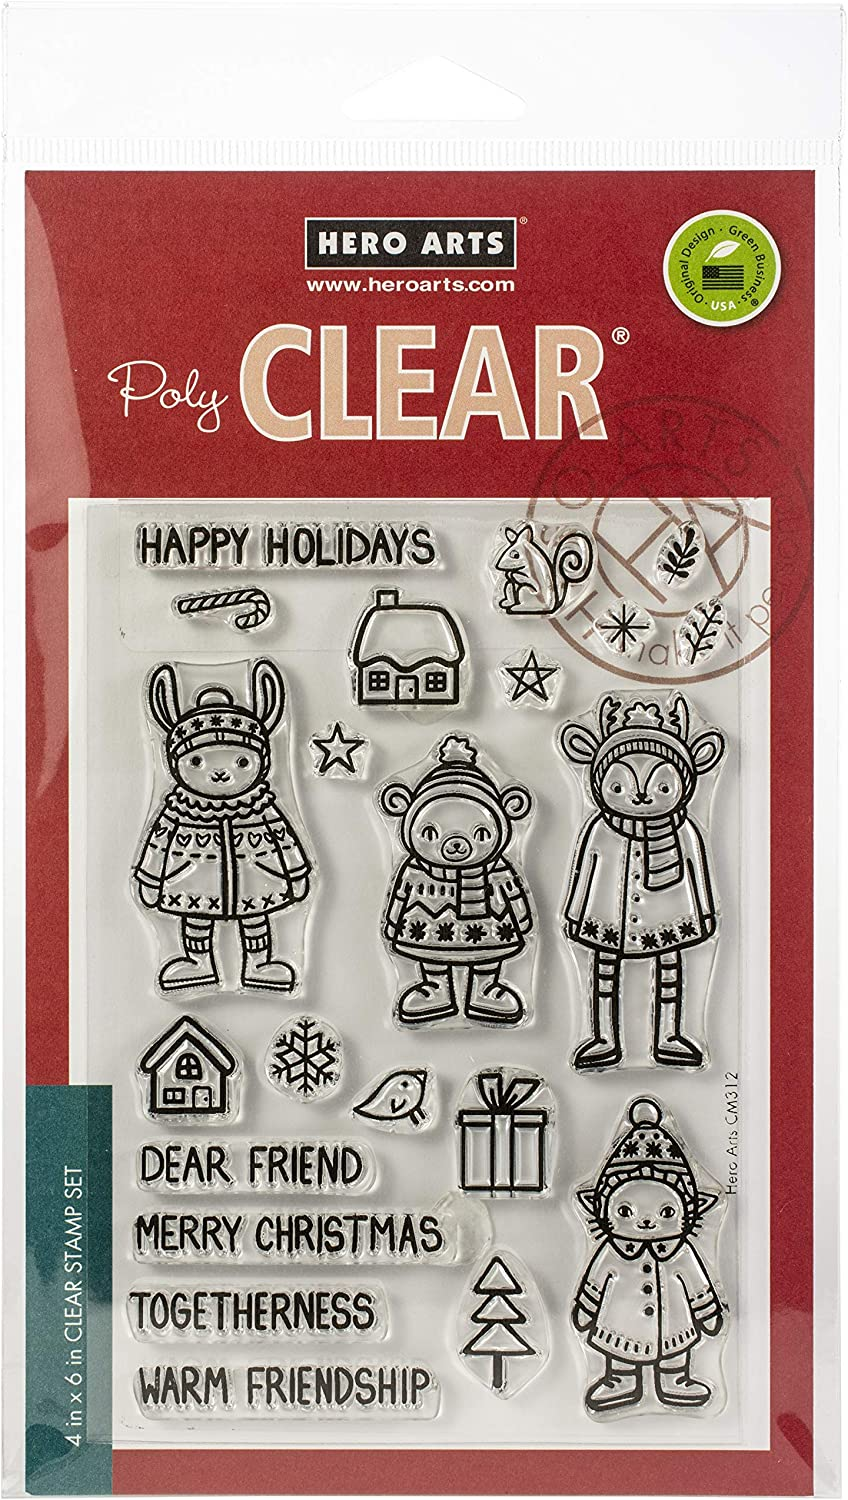 Warm Animals Hero Arts Clear STMP ANMLS us:one size